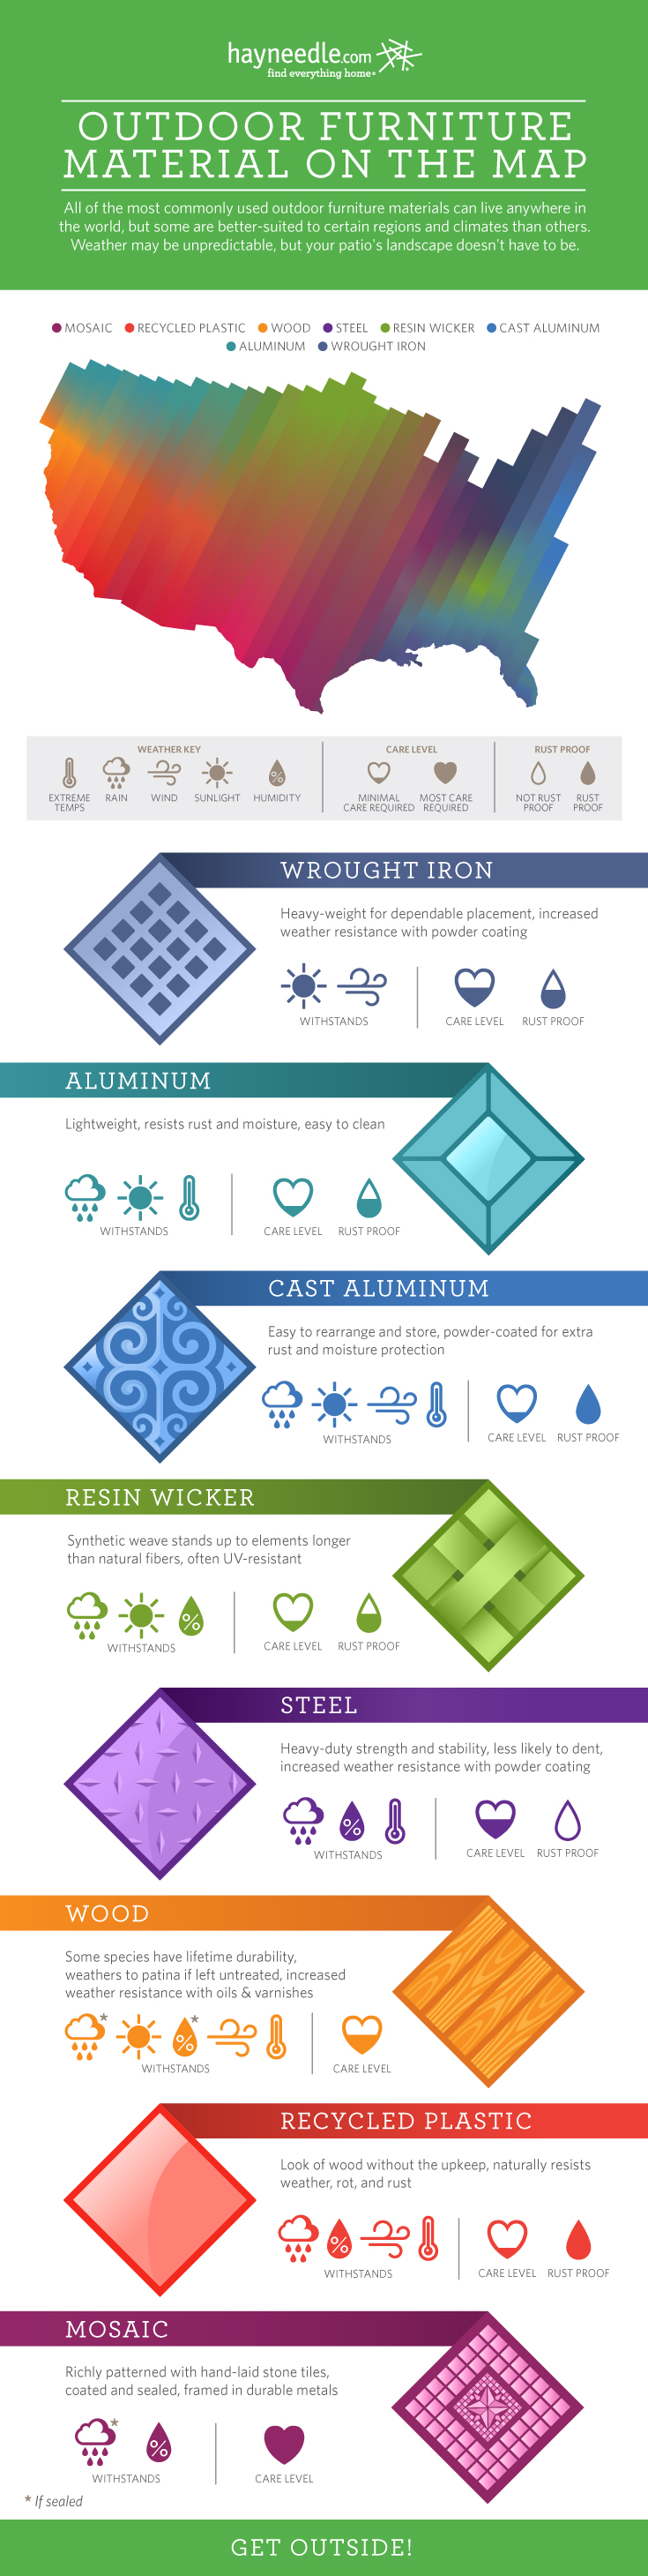 Best outdoor furniture material guide visual ly